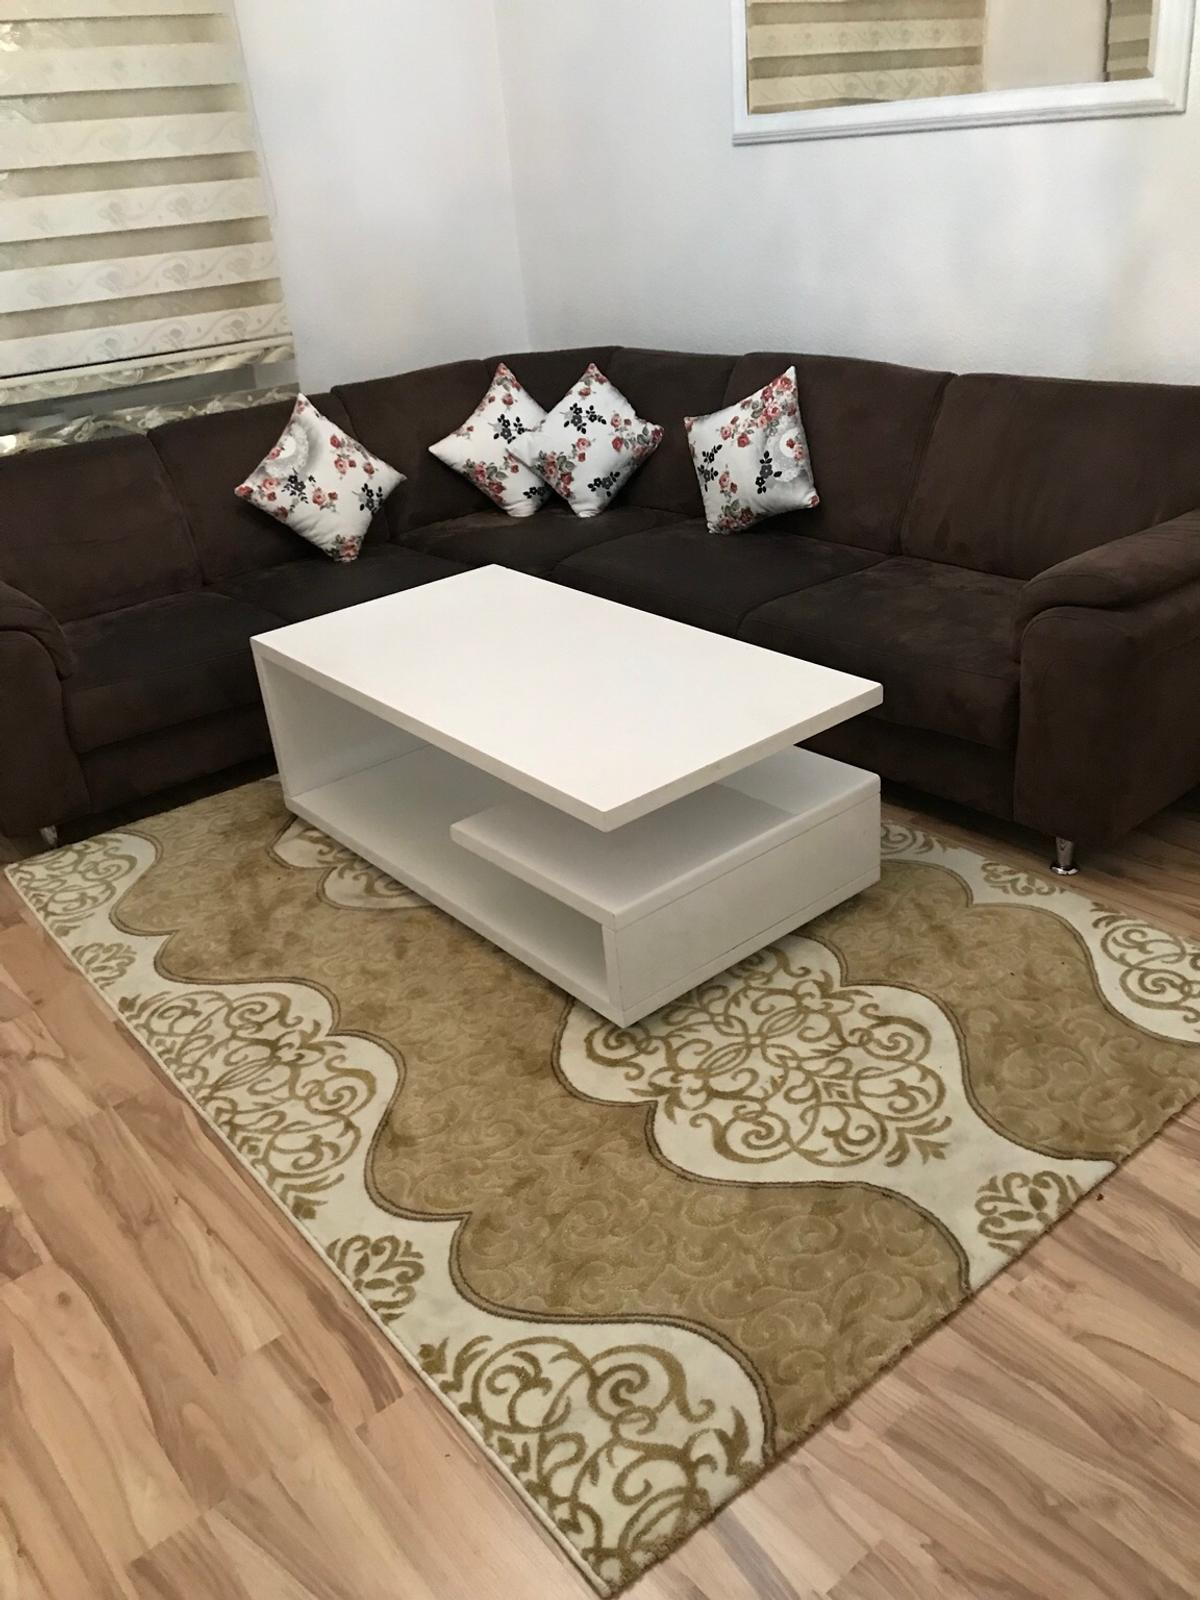 Teppich Couchtisch Couch Teppich Couchtisch In 45897 Gelsenkirchen For 1 00 For Sale